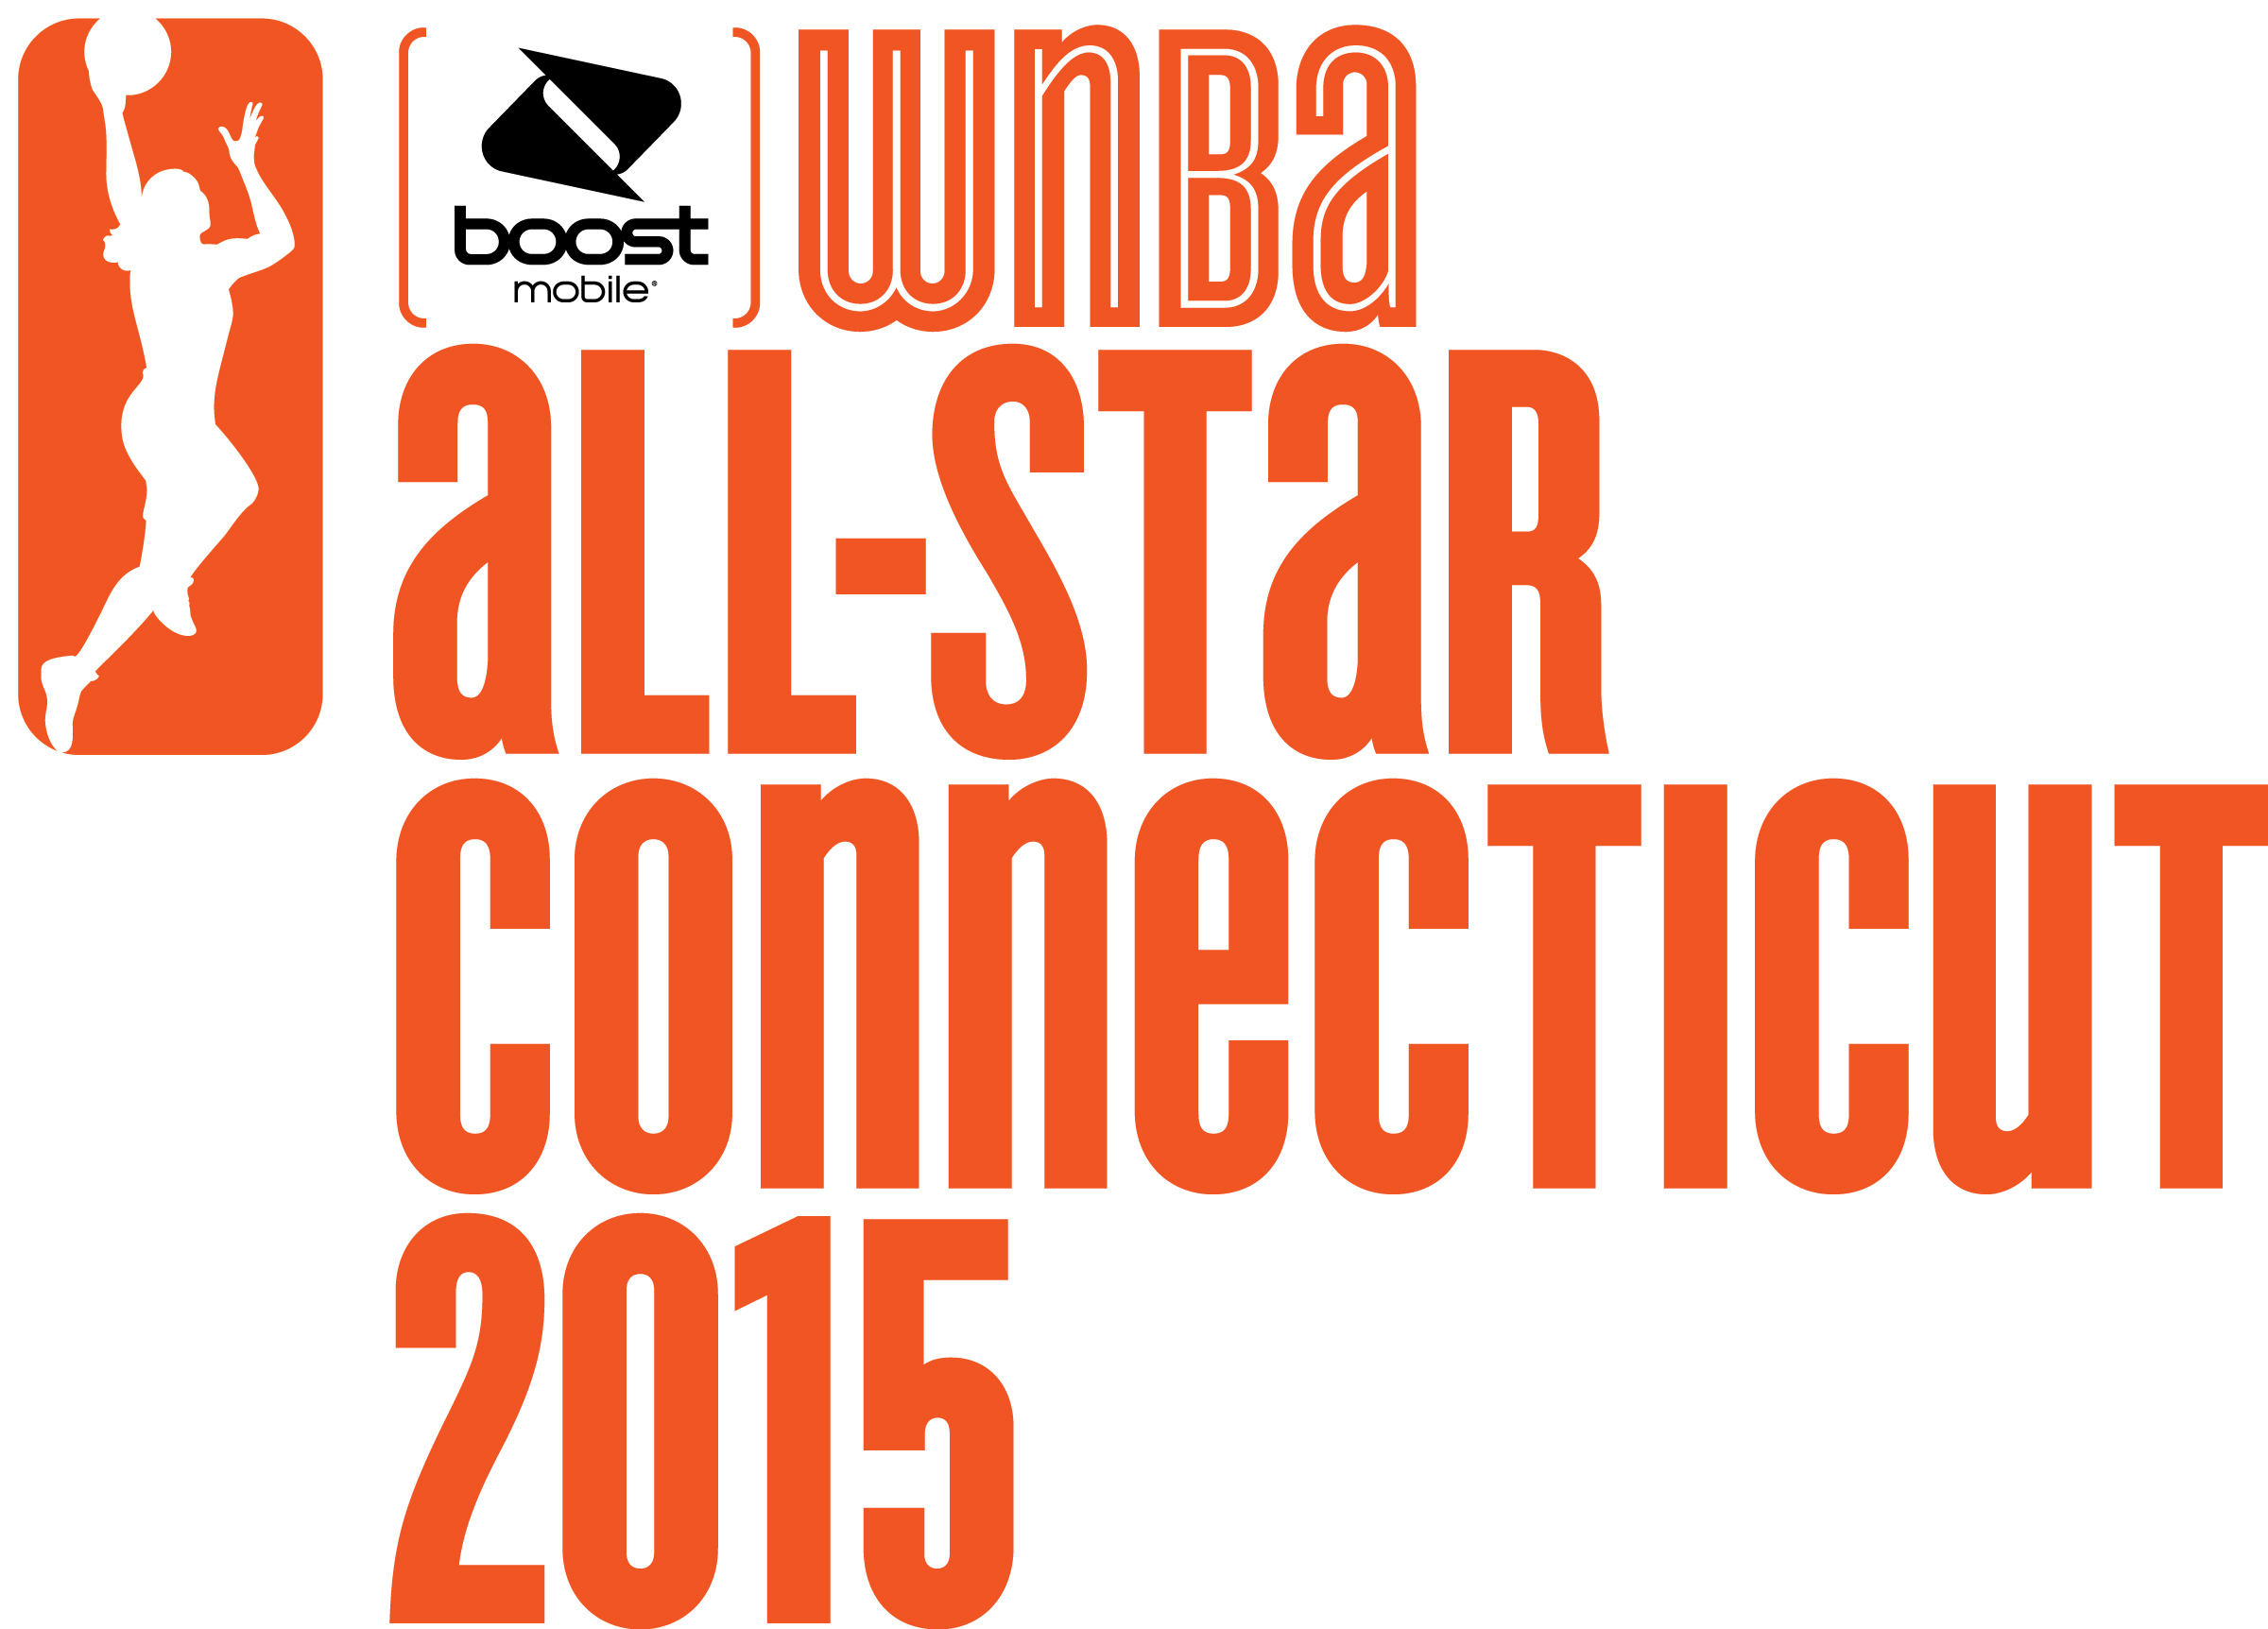 West takes All-Star game behind Maya Moore's fourth quarter burst, 117-112